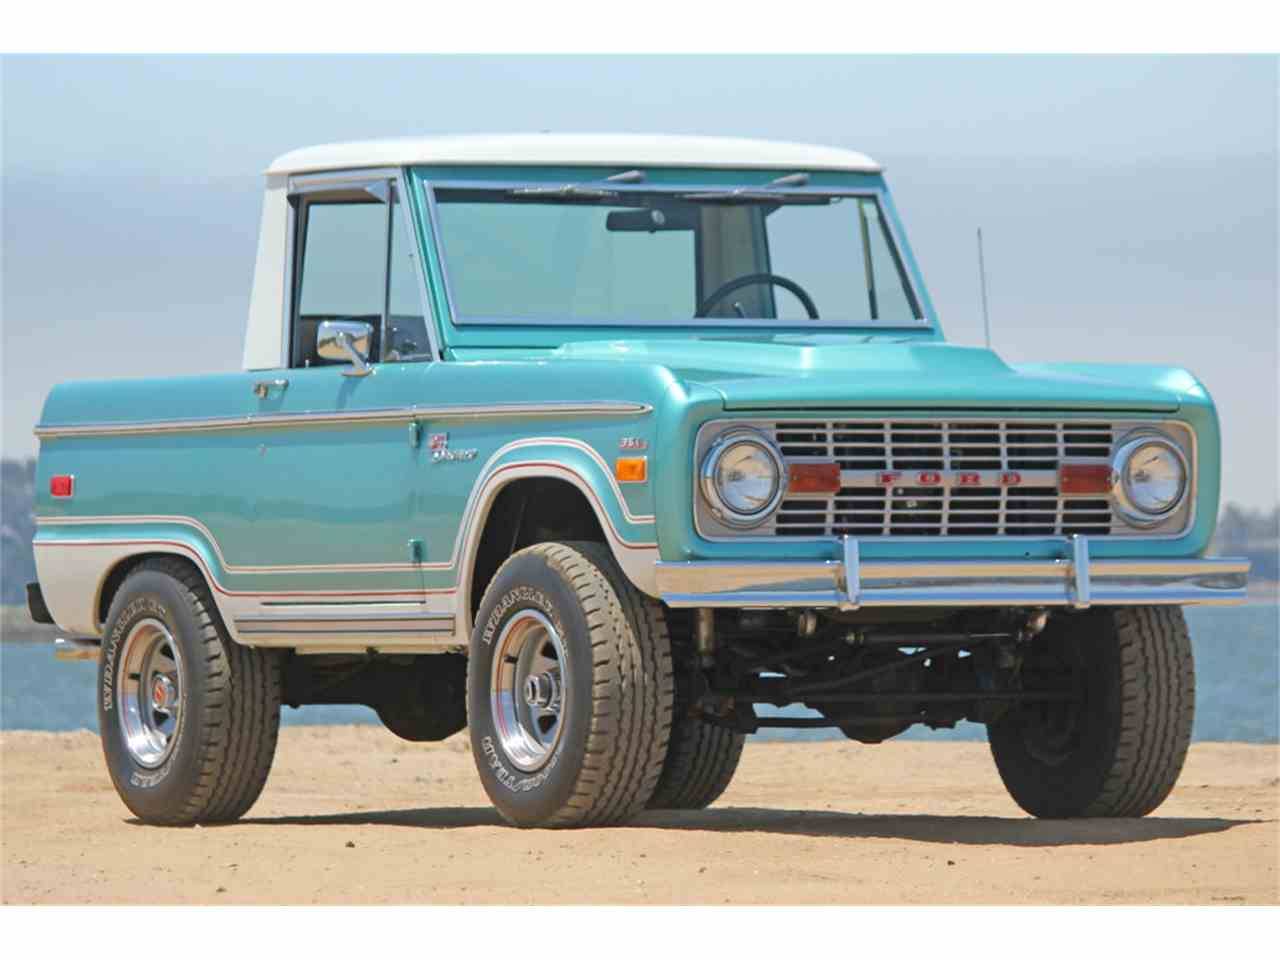 ford bronco 1970 truck images galleries with a bite. Black Bedroom Furniture Sets. Home Design Ideas